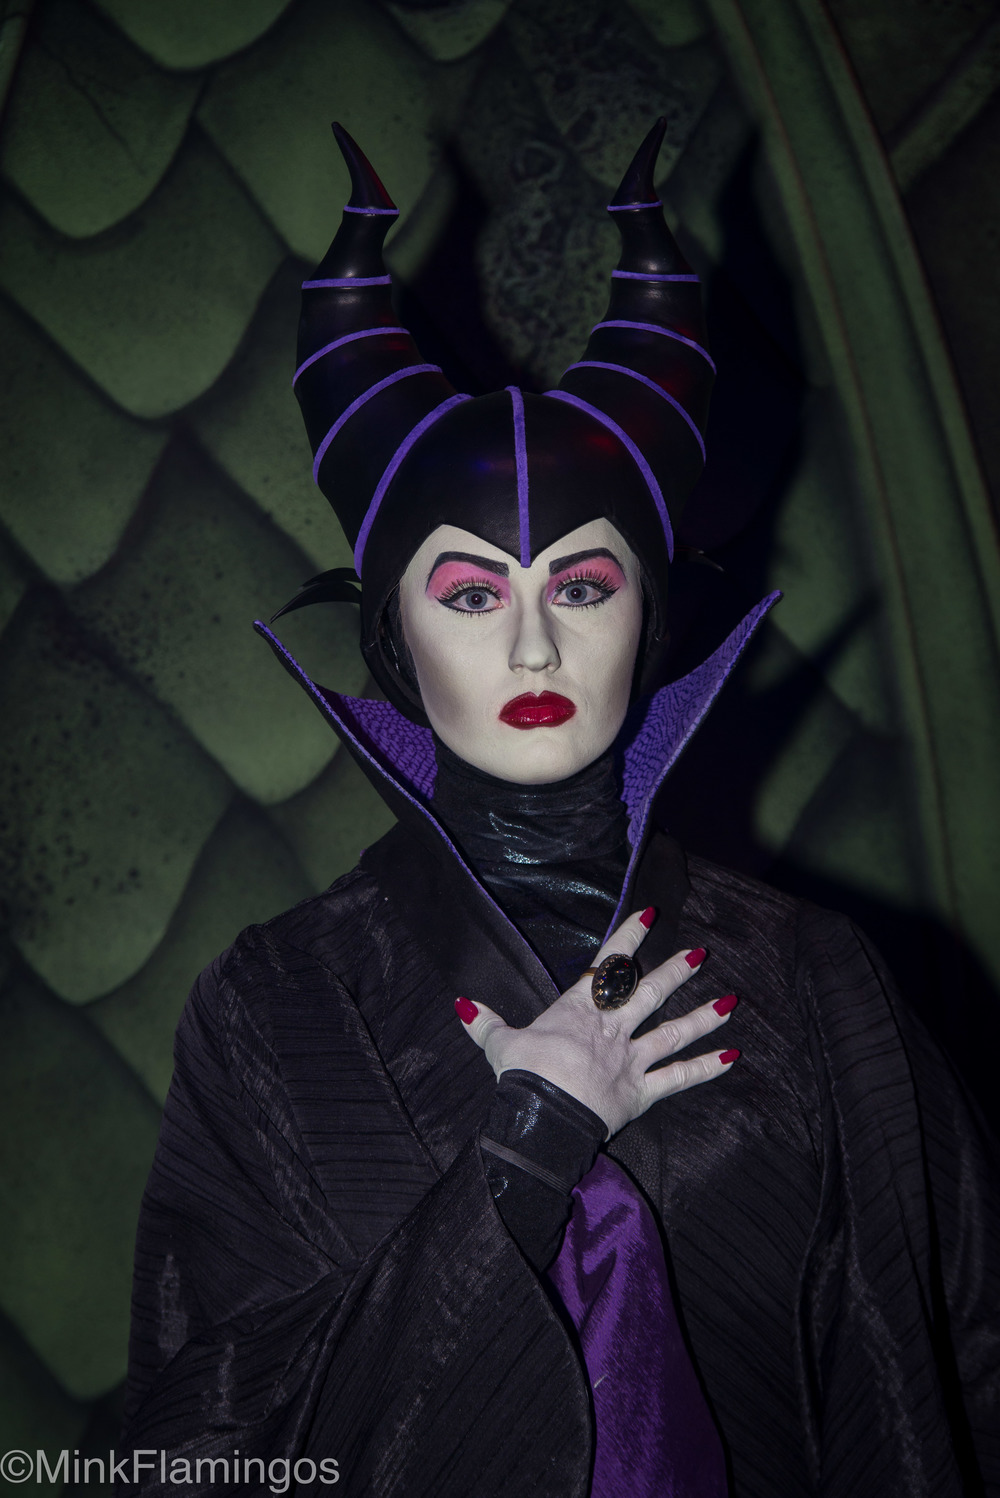 Club villain at hollywood studios minkflamingos disney has completely redone her costume for club villain including the headwear it is without a doubt the best maleficent has ever looked at the parks m4hsunfo